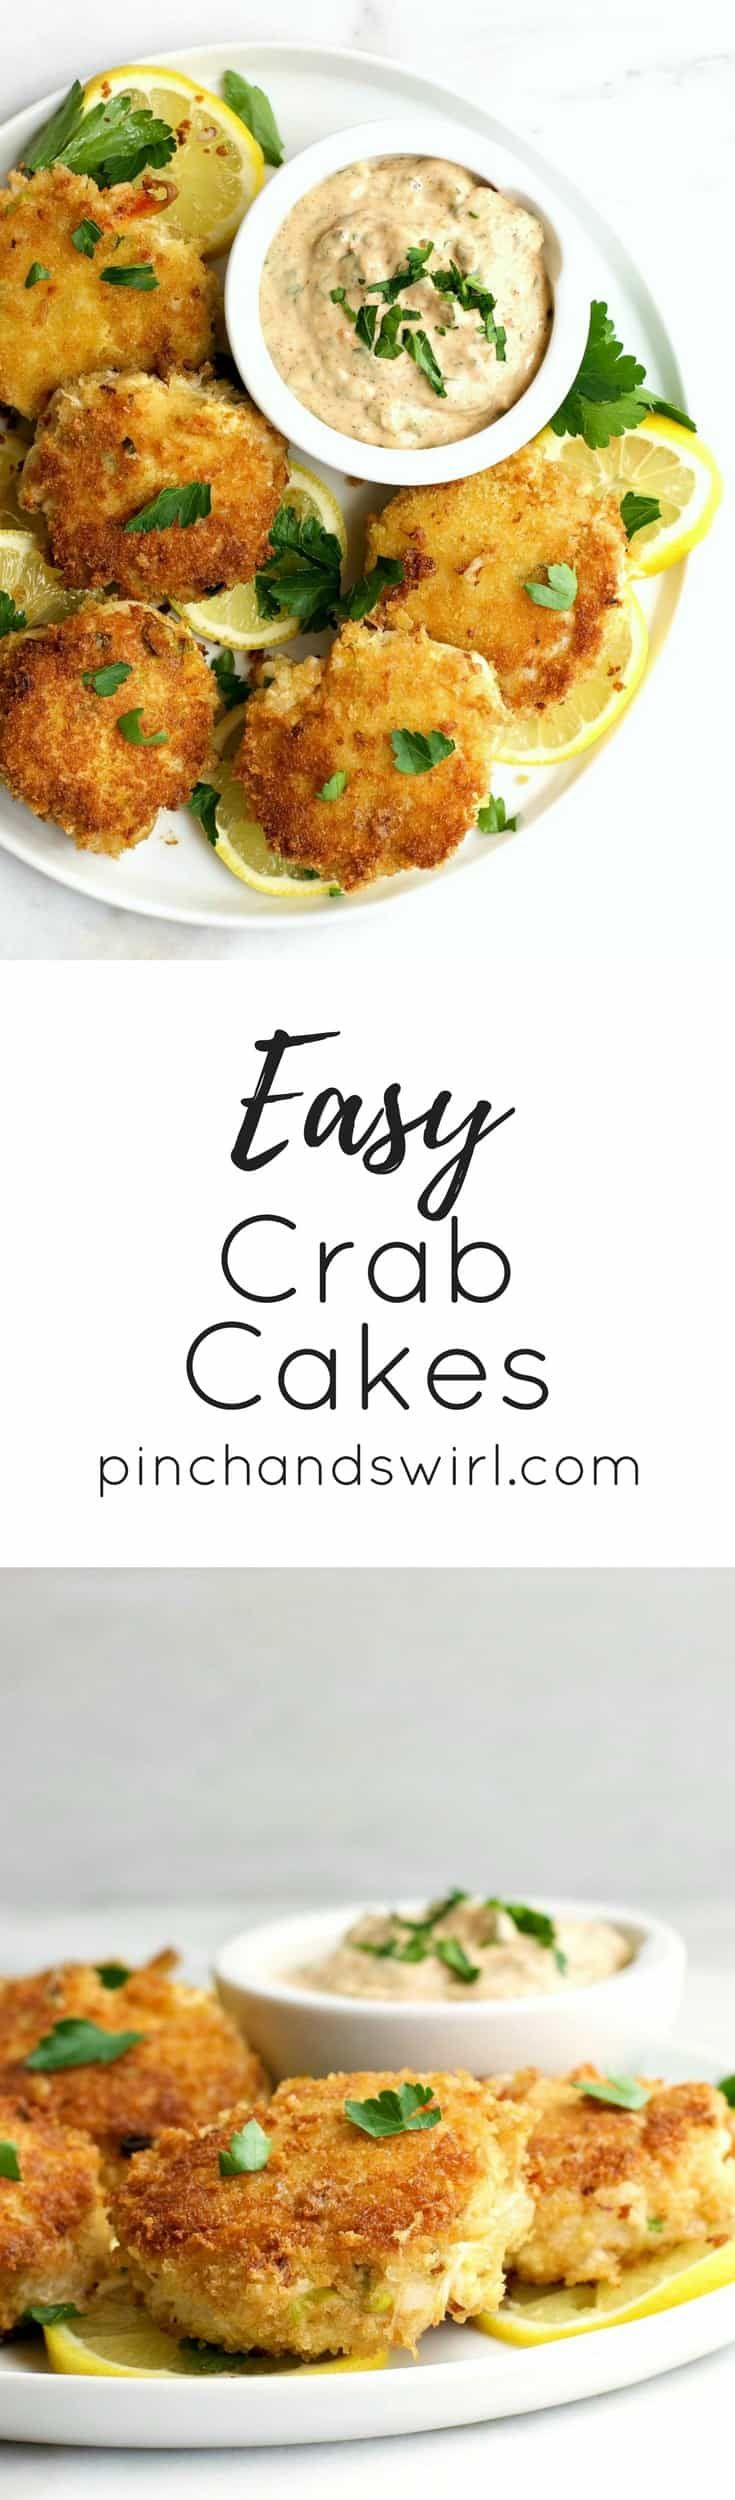 In this Easy Crab Cake recipe, I'll show you exactly how easy it is to make delicious lump crab cakes!  They're made with just a few simple ingredients like egg, mayonnaise, fresh lemon juice, hot sauce and a coating of panko breadcrumbs so that they have that delicate crunch on the outside once you fry them. And I love to fry them in a mixture of oil and butter because butter and crab are made for each other!  #crabcakes #mardigrasrecipes #recipeideas #crab #neworleans